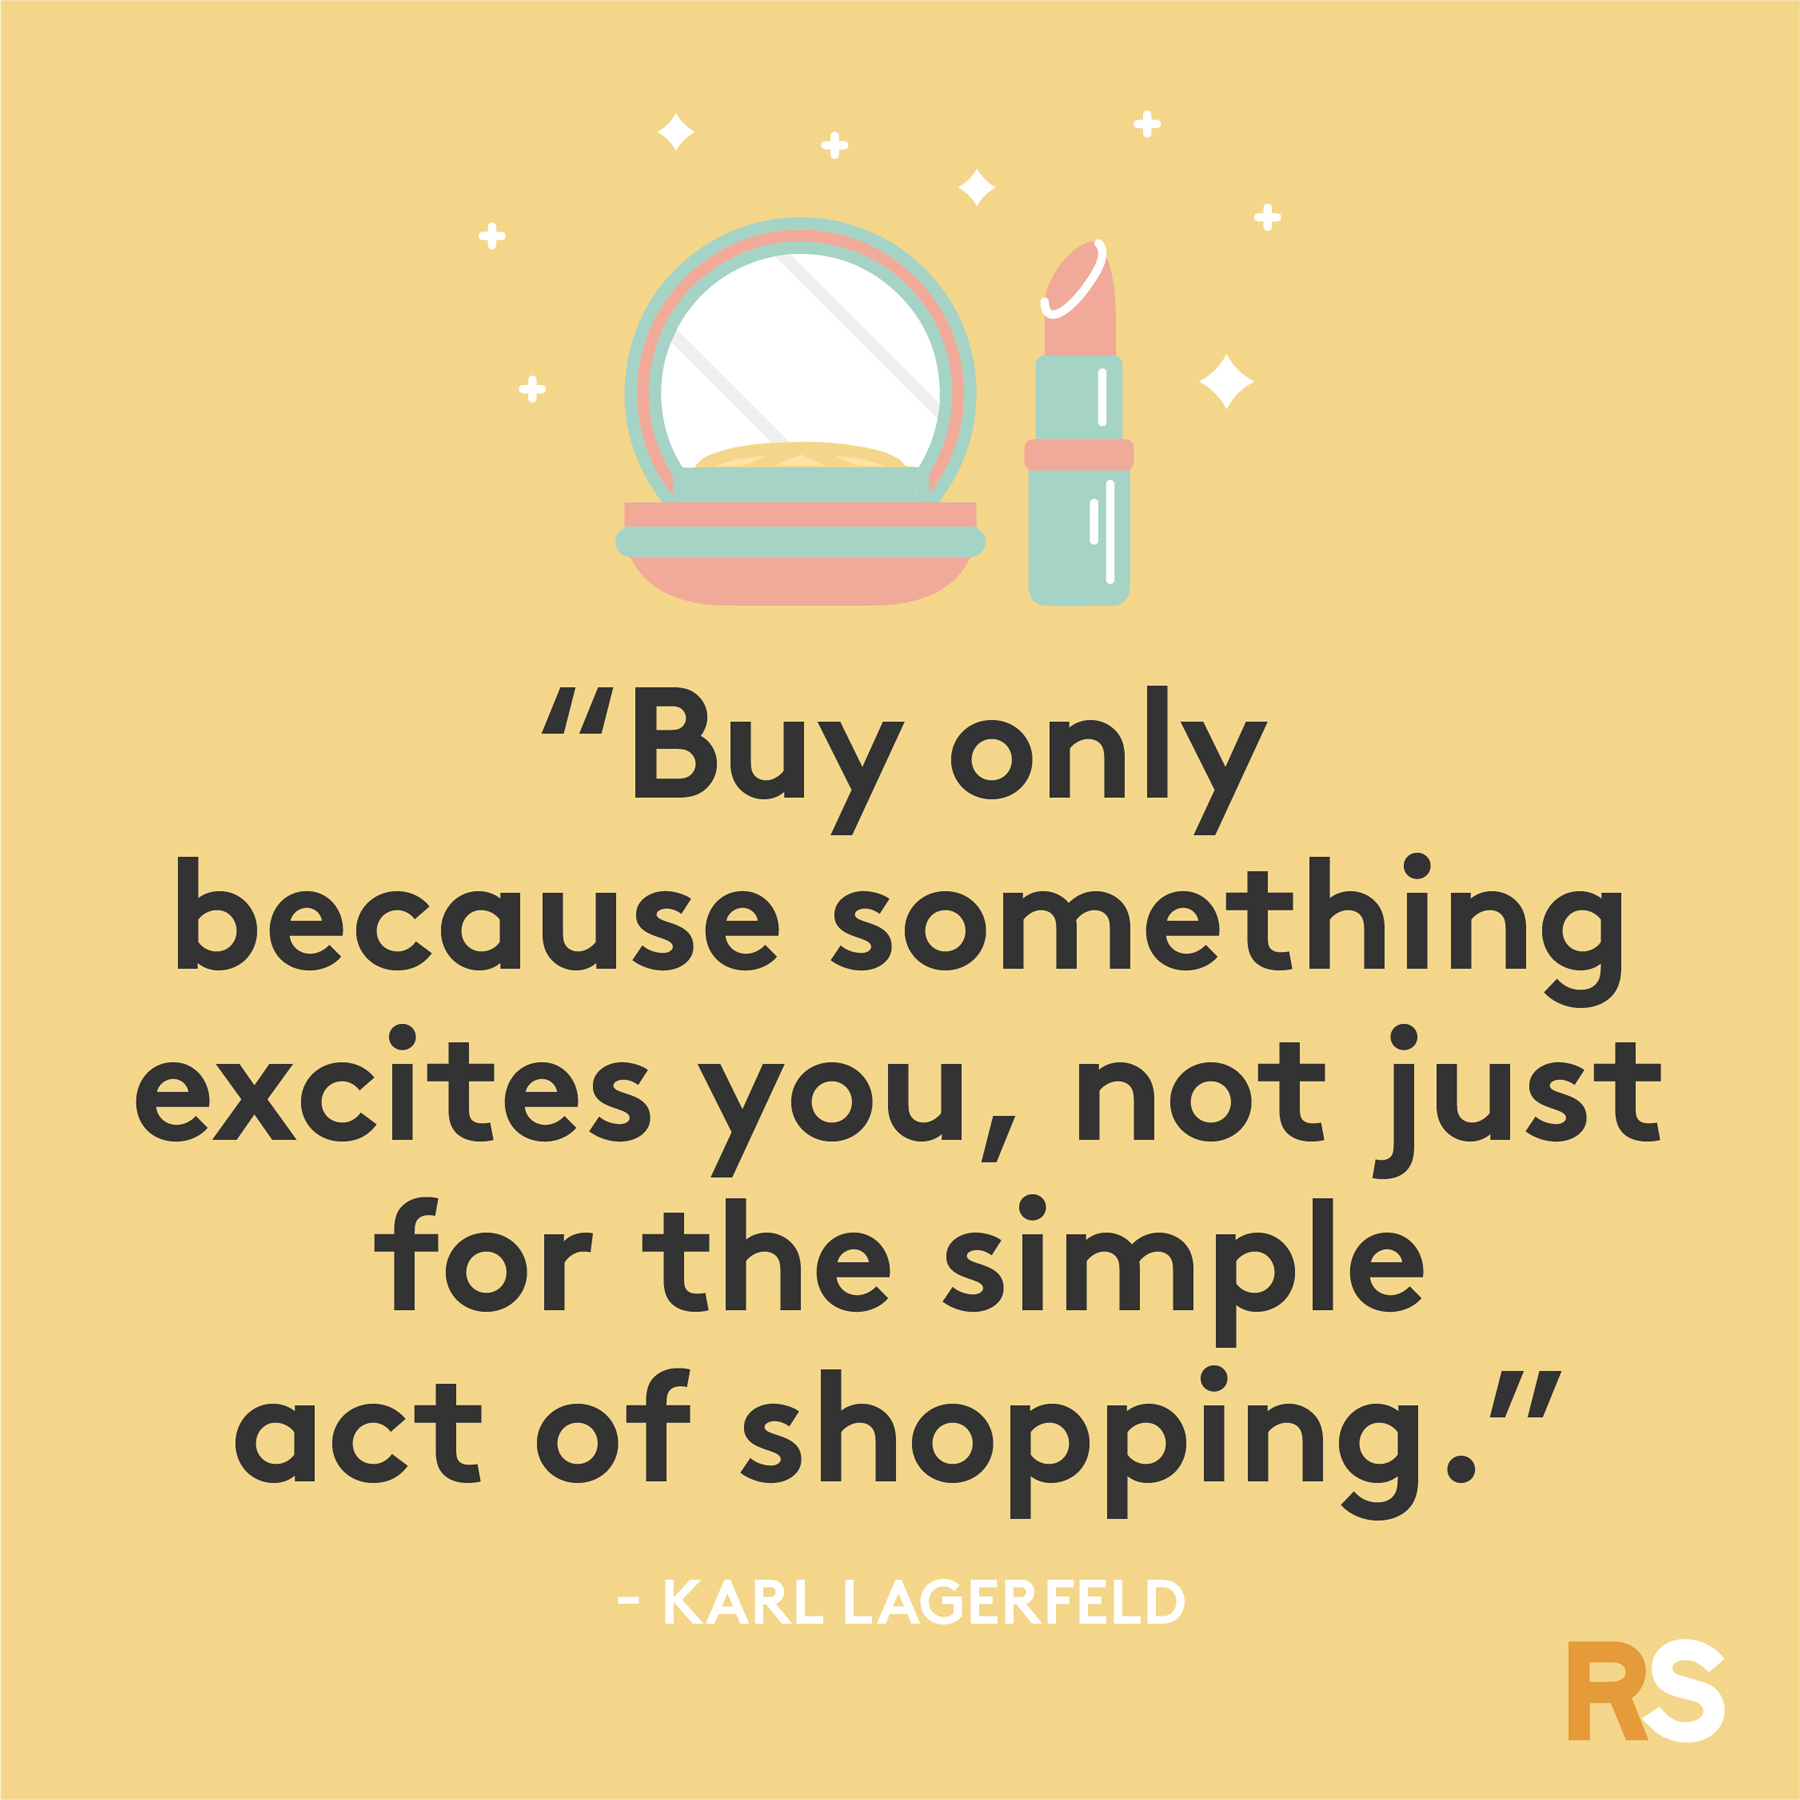 Black Friday funny quotes, sayings - Karl Lagerfeld, shopping excitement